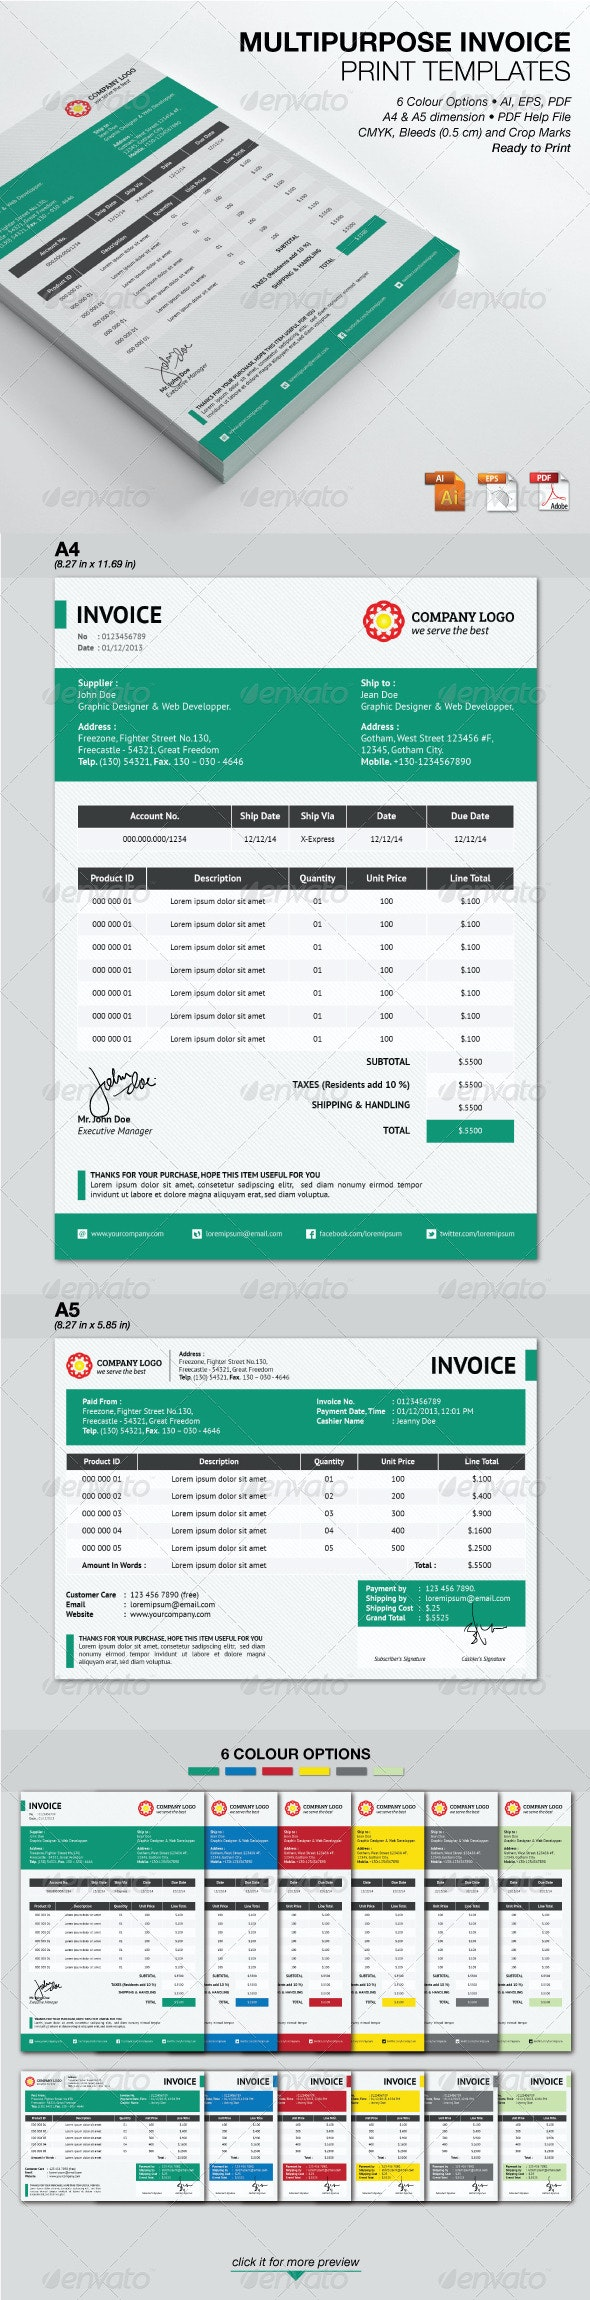 Multipurpose Invoice Print Templates - Proposals & Invoices Stationery